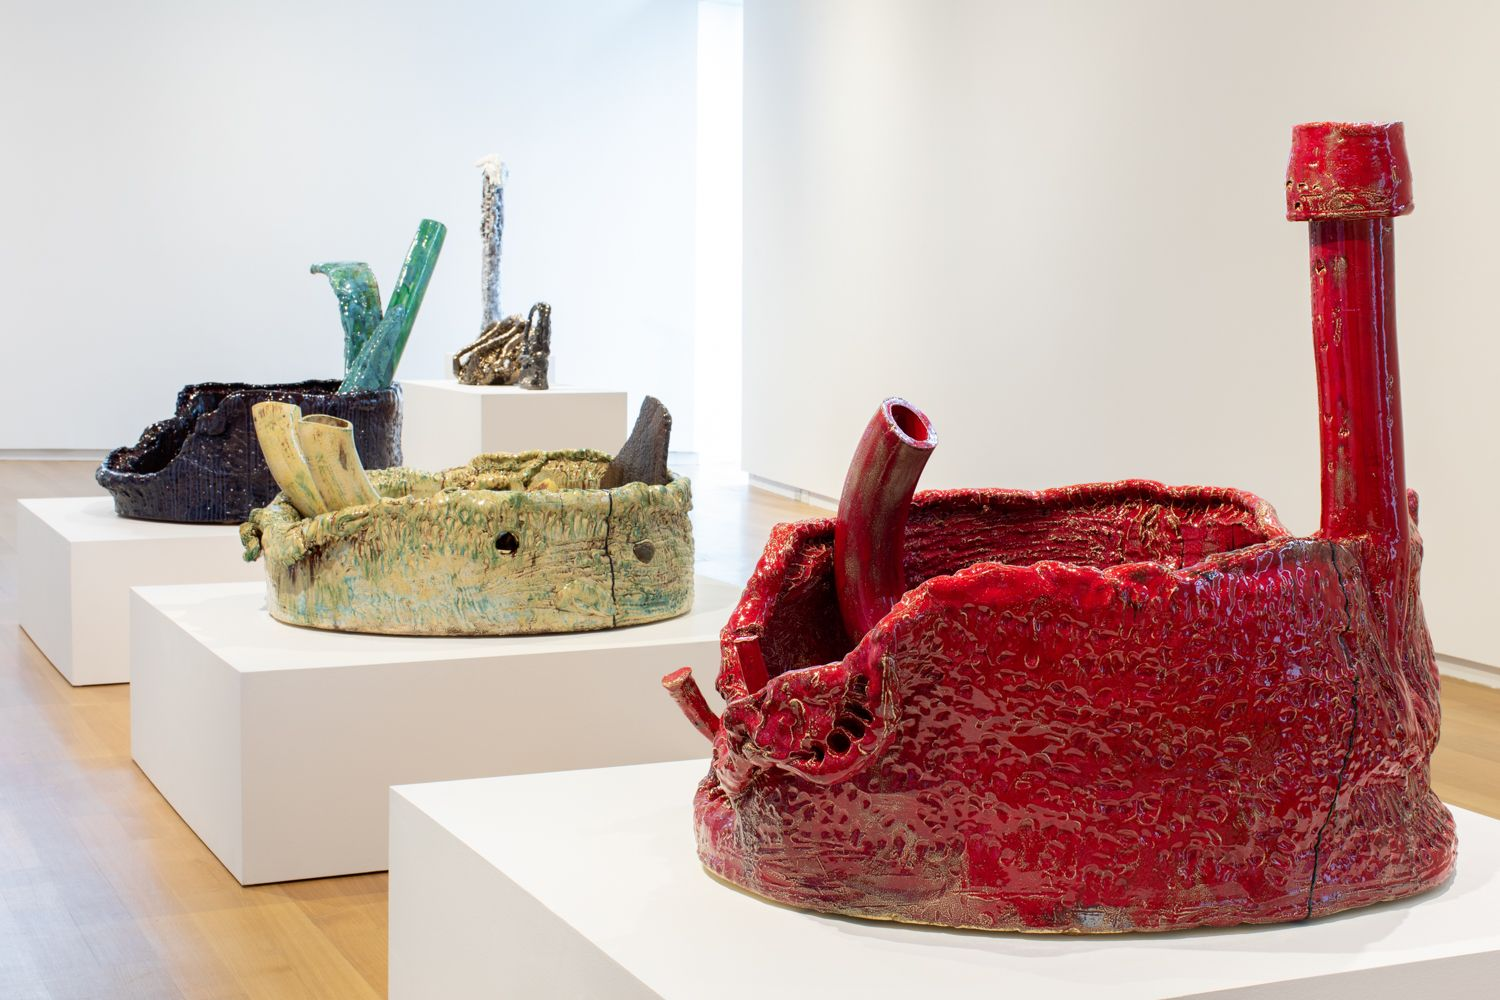 Installation view, Sterling Ruby: Ceramics, Museum of Arts and Design, New York, New York, 2018–2019